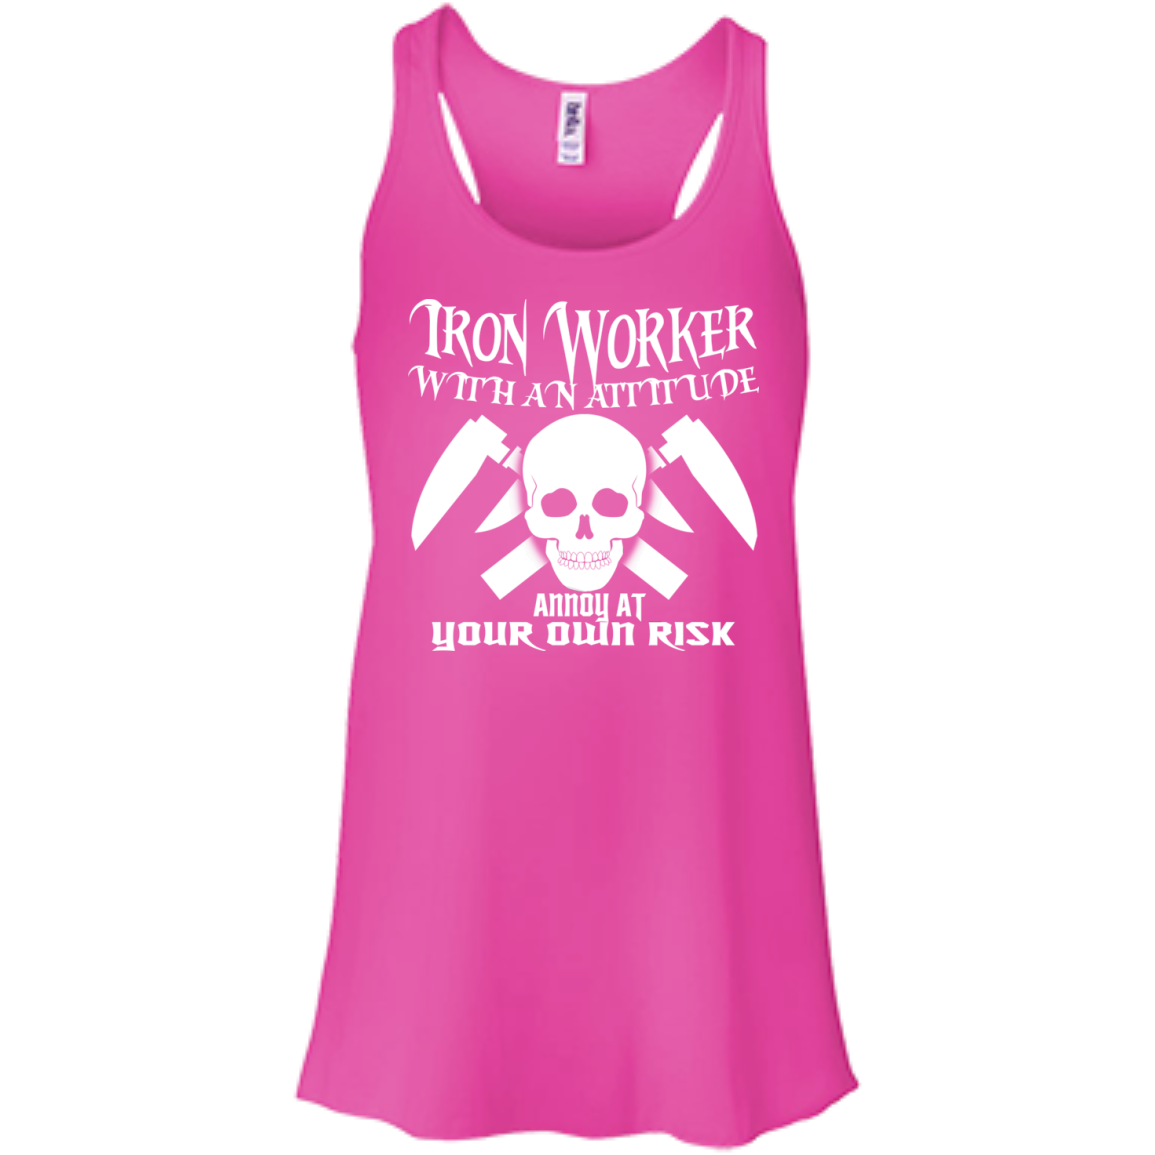 Iron Worker Attitude Annoy At Your Own Risk Flowy Racerback Tanks